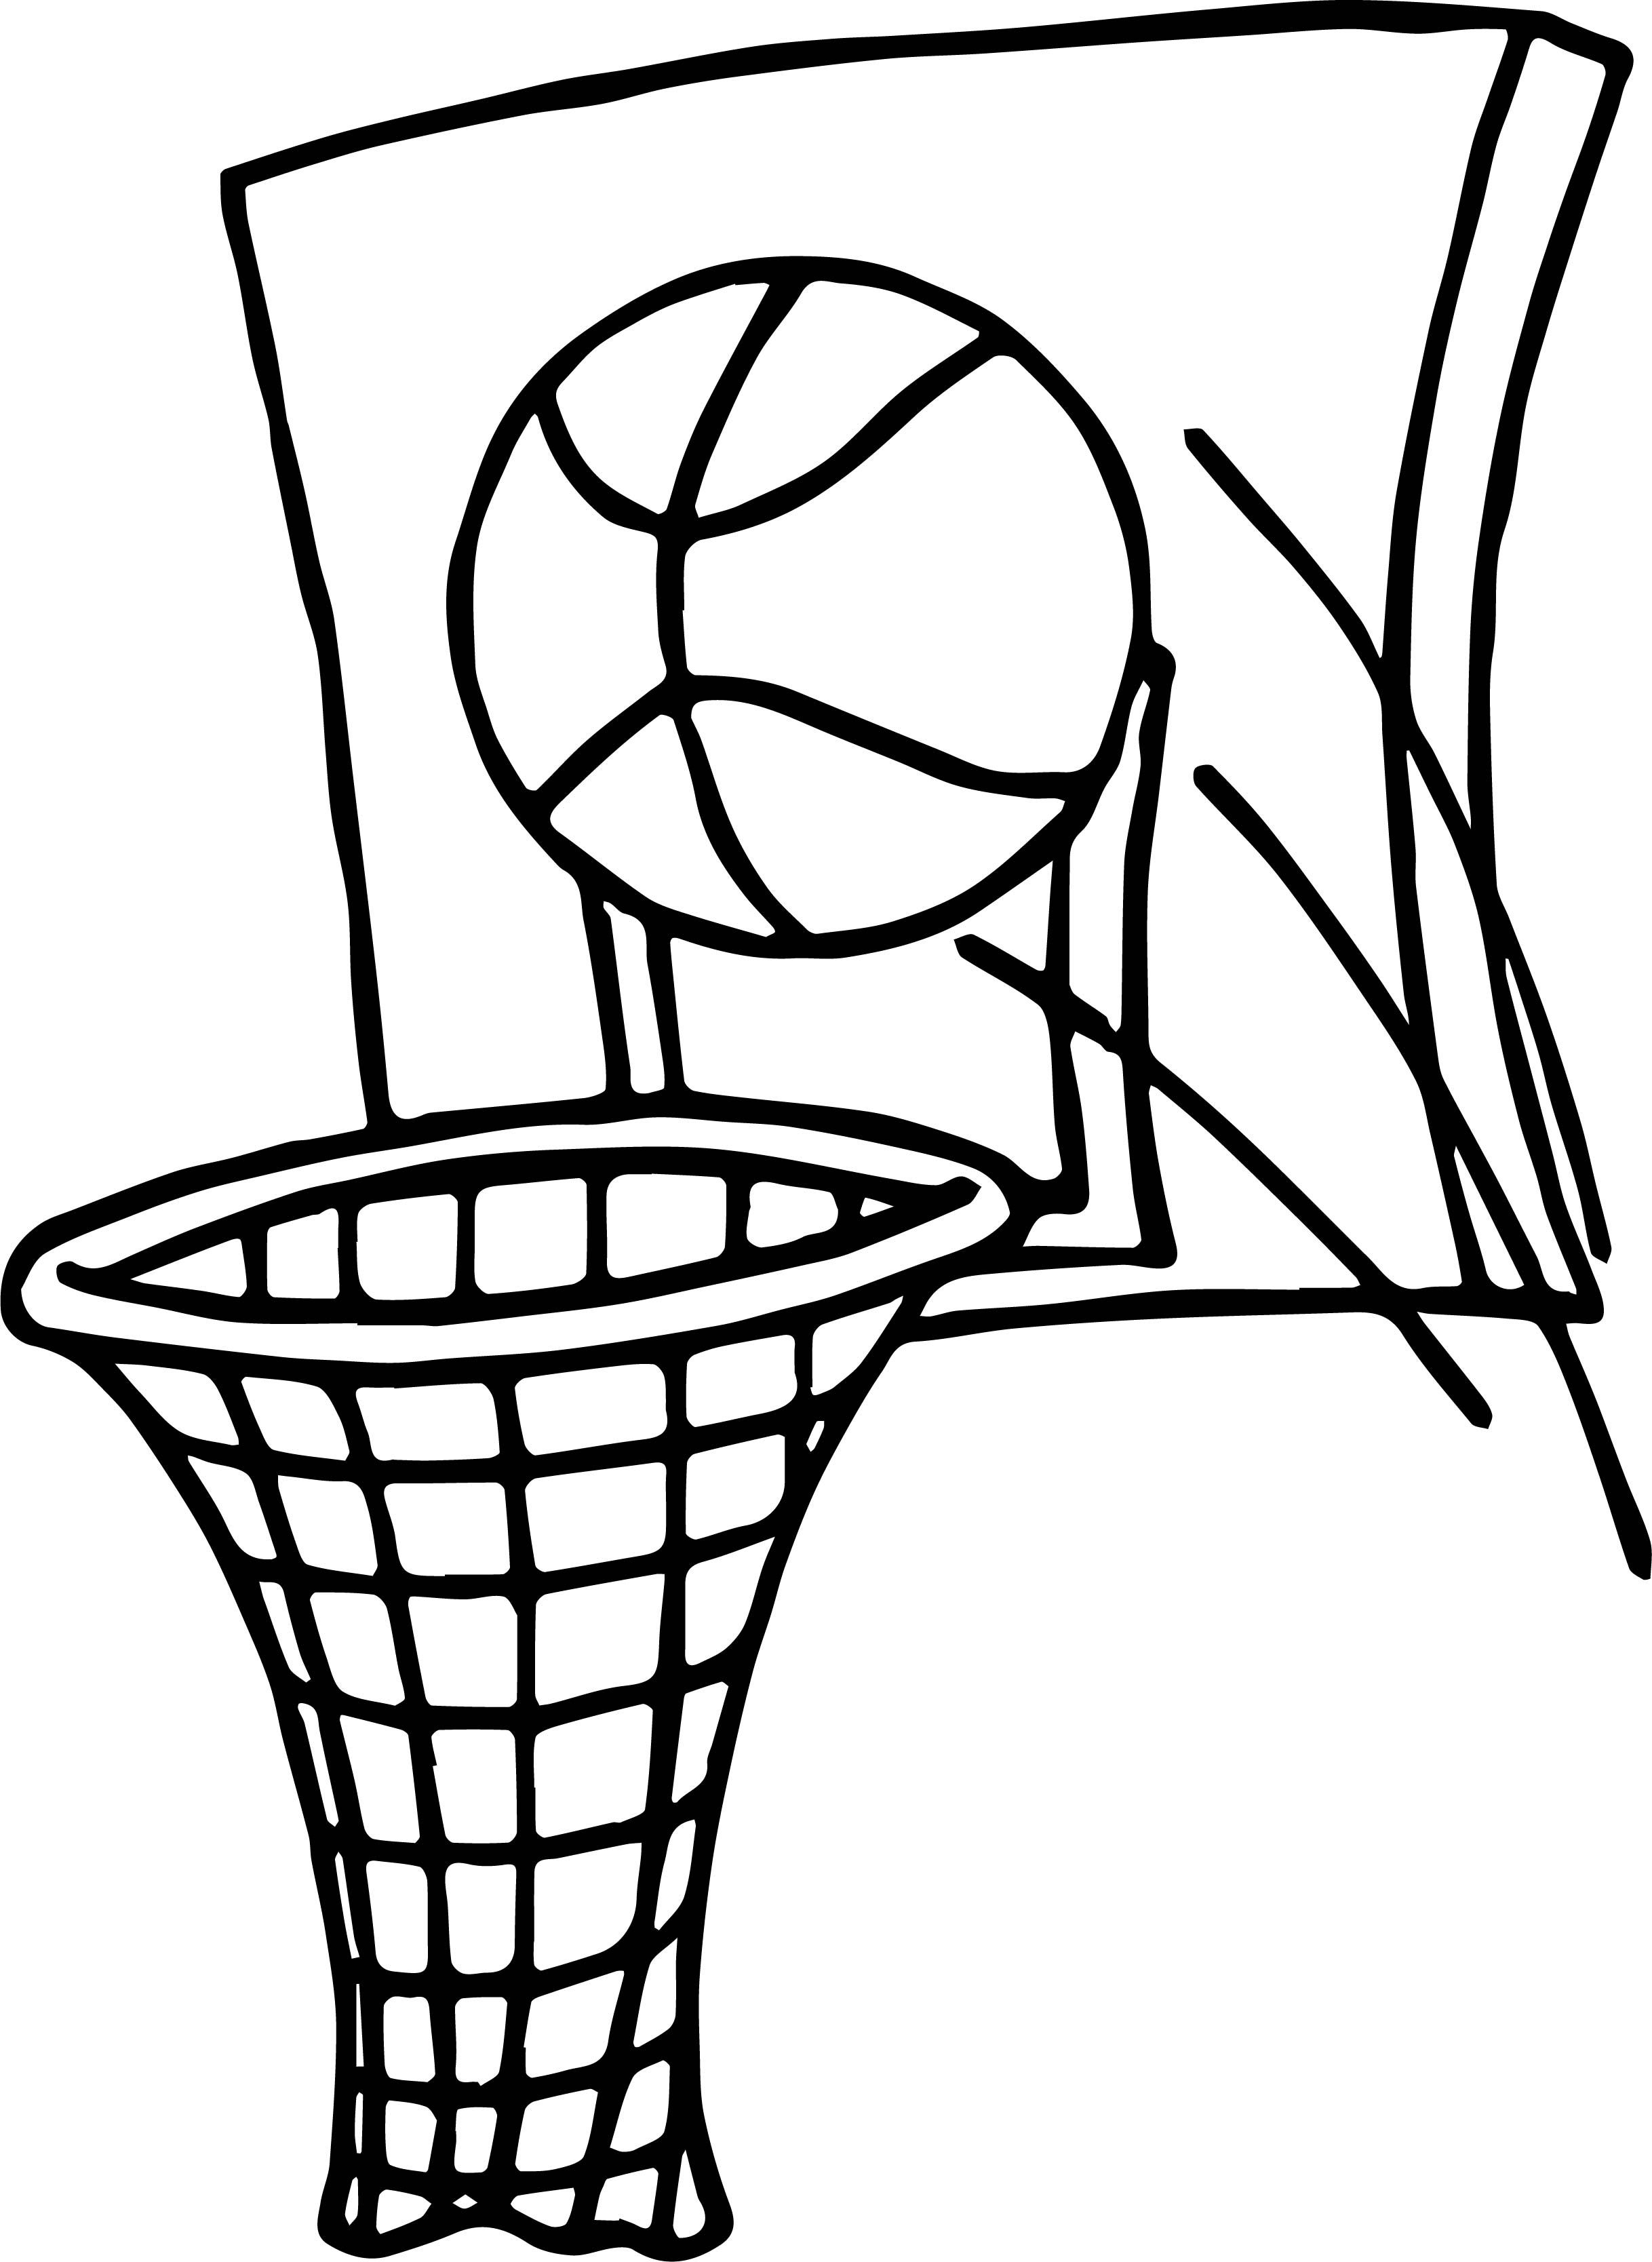 Cool Ball Shot Playing Basketball Coloring Page Basketball